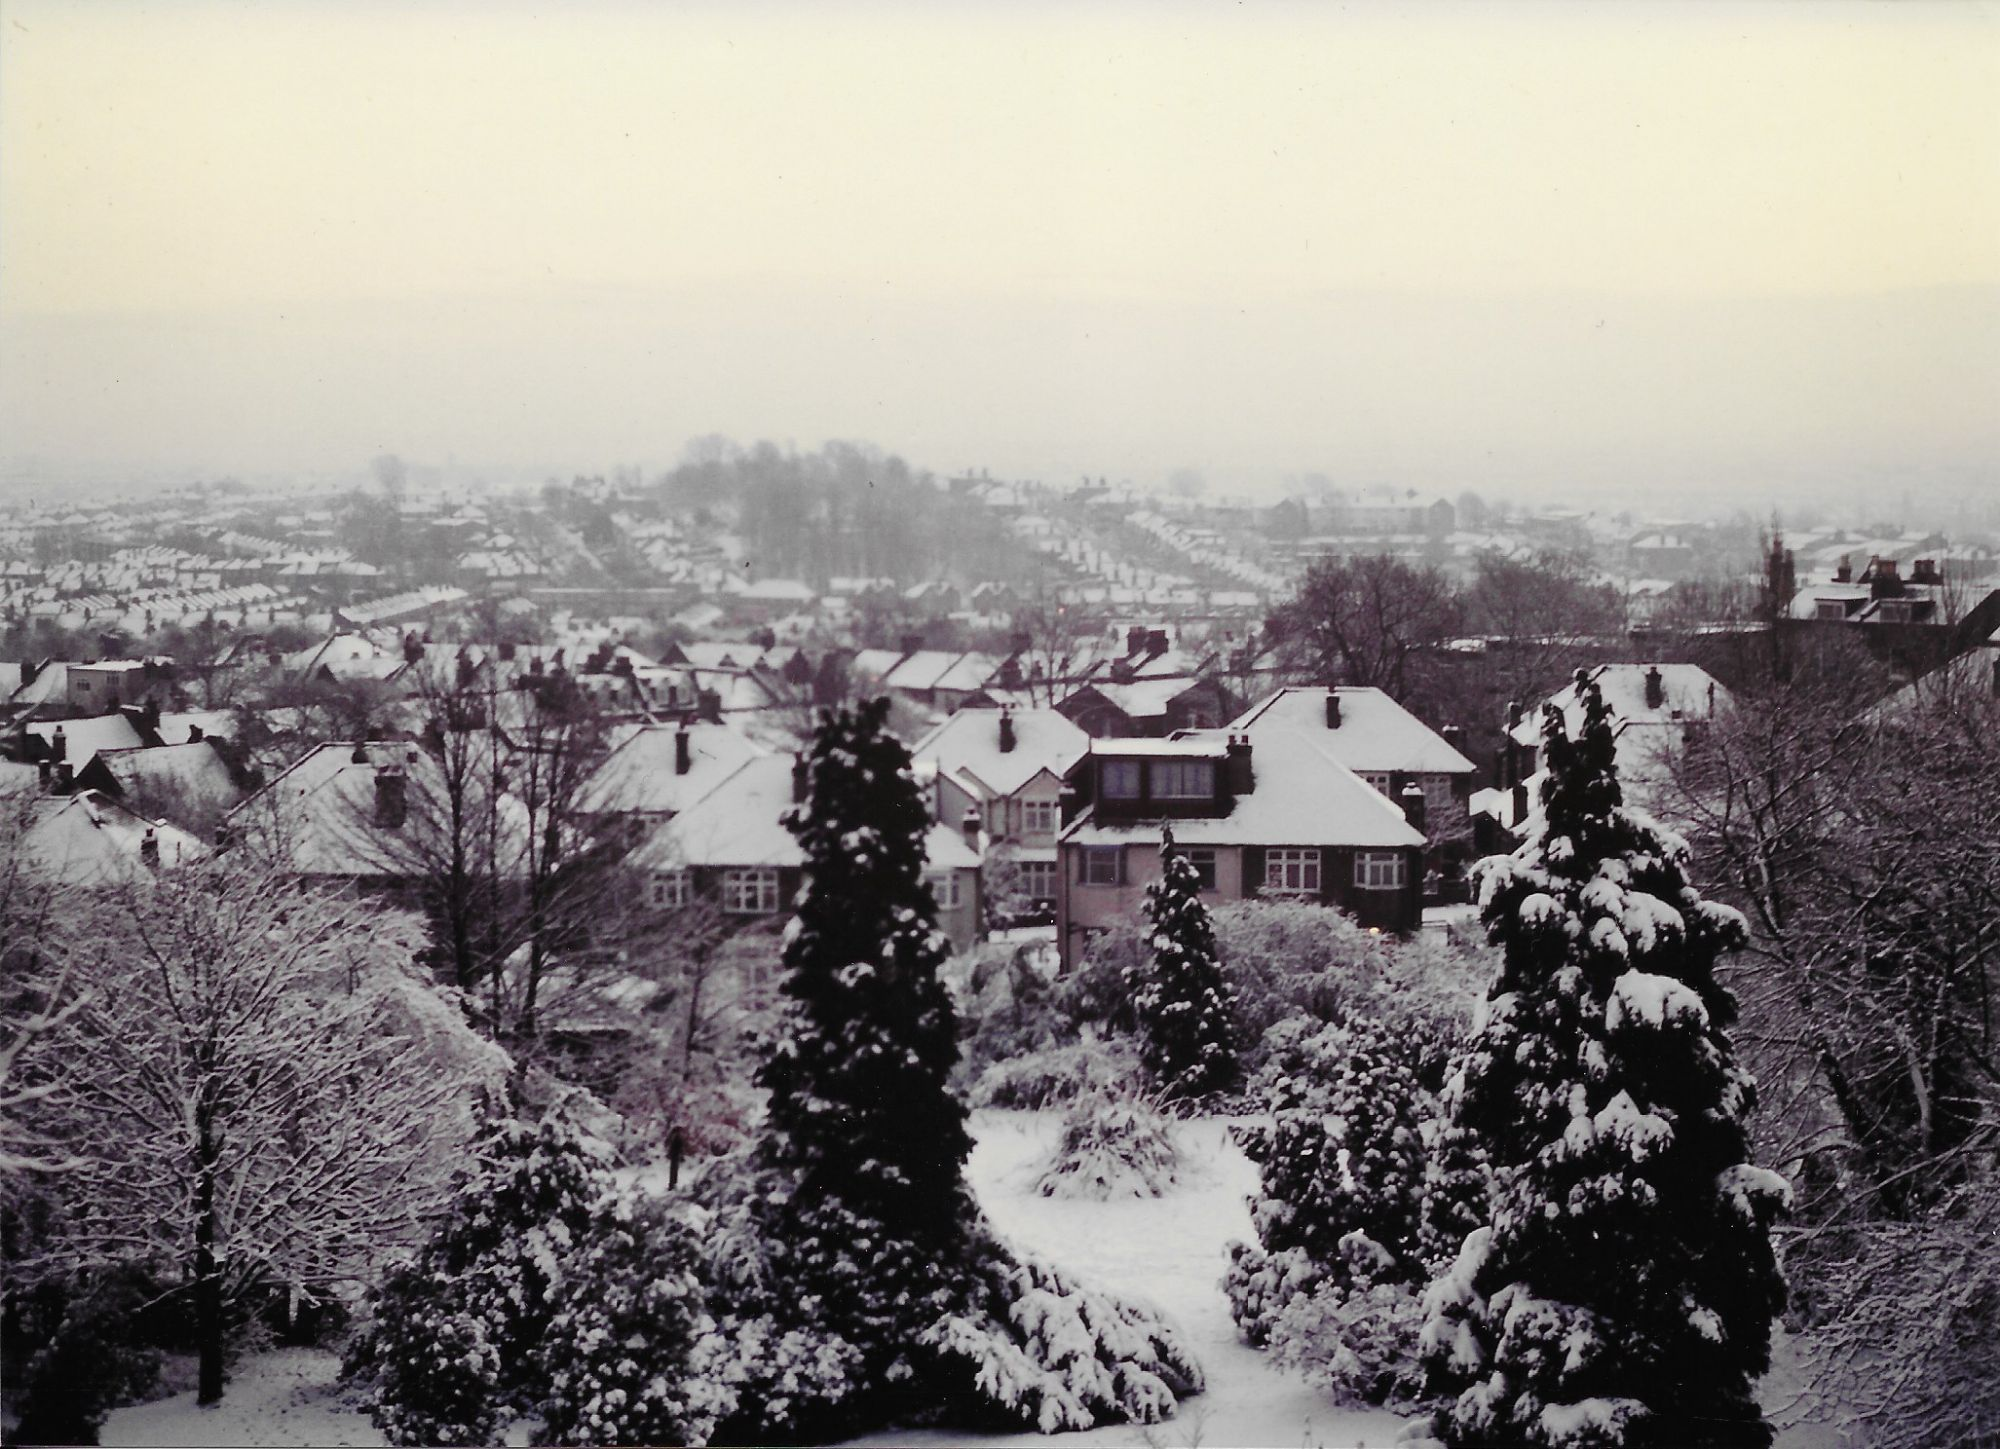 View from upstairs of garden in snow with houses in the distance.